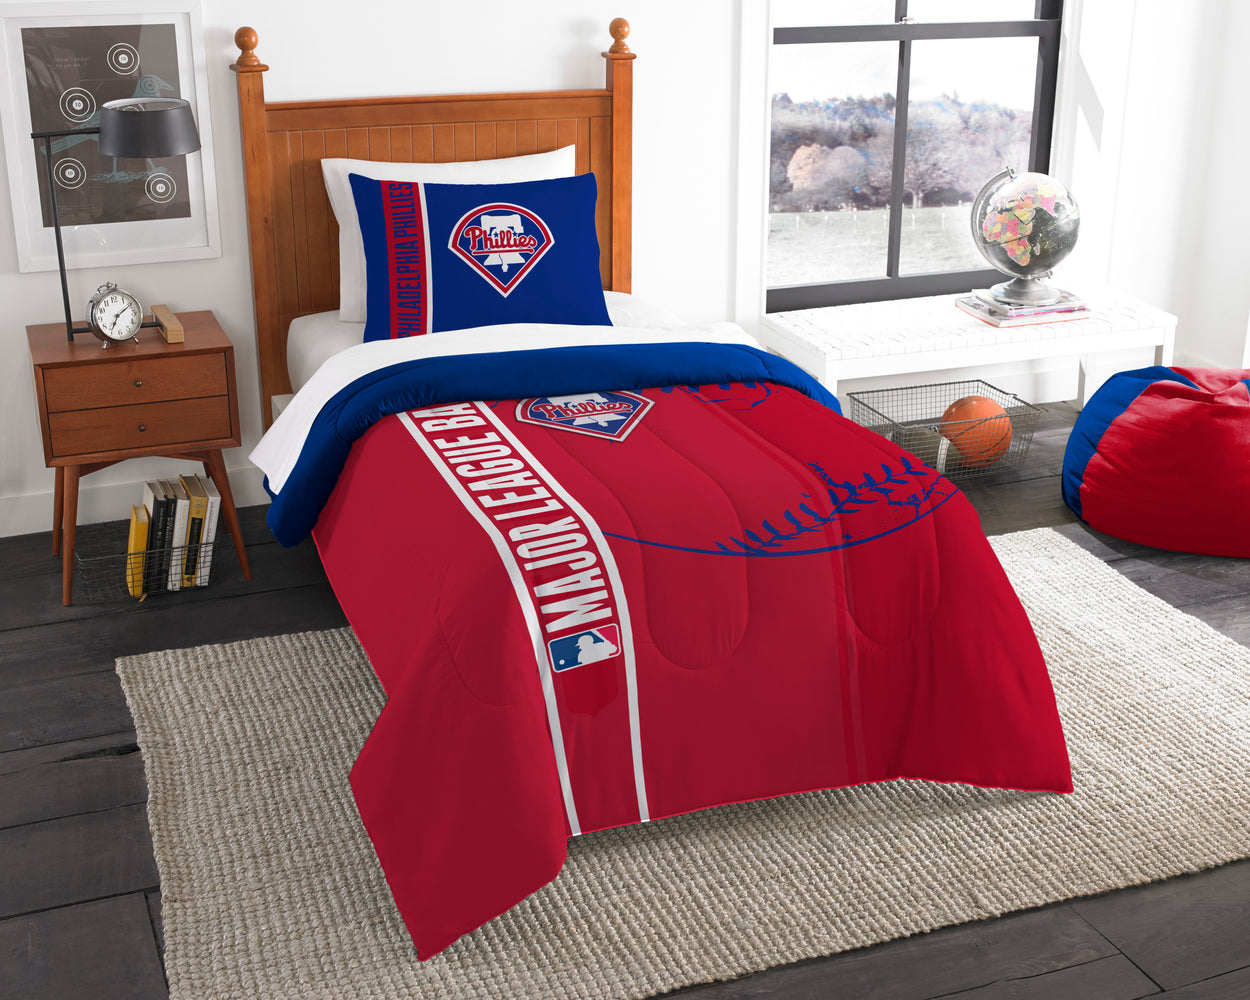 "Phillies OFFICIAL , Bedding Twin Applique Comforter (64""""x 86"""") & 1 Sham (20""""x 26"""") Set  by The Northwest Company"